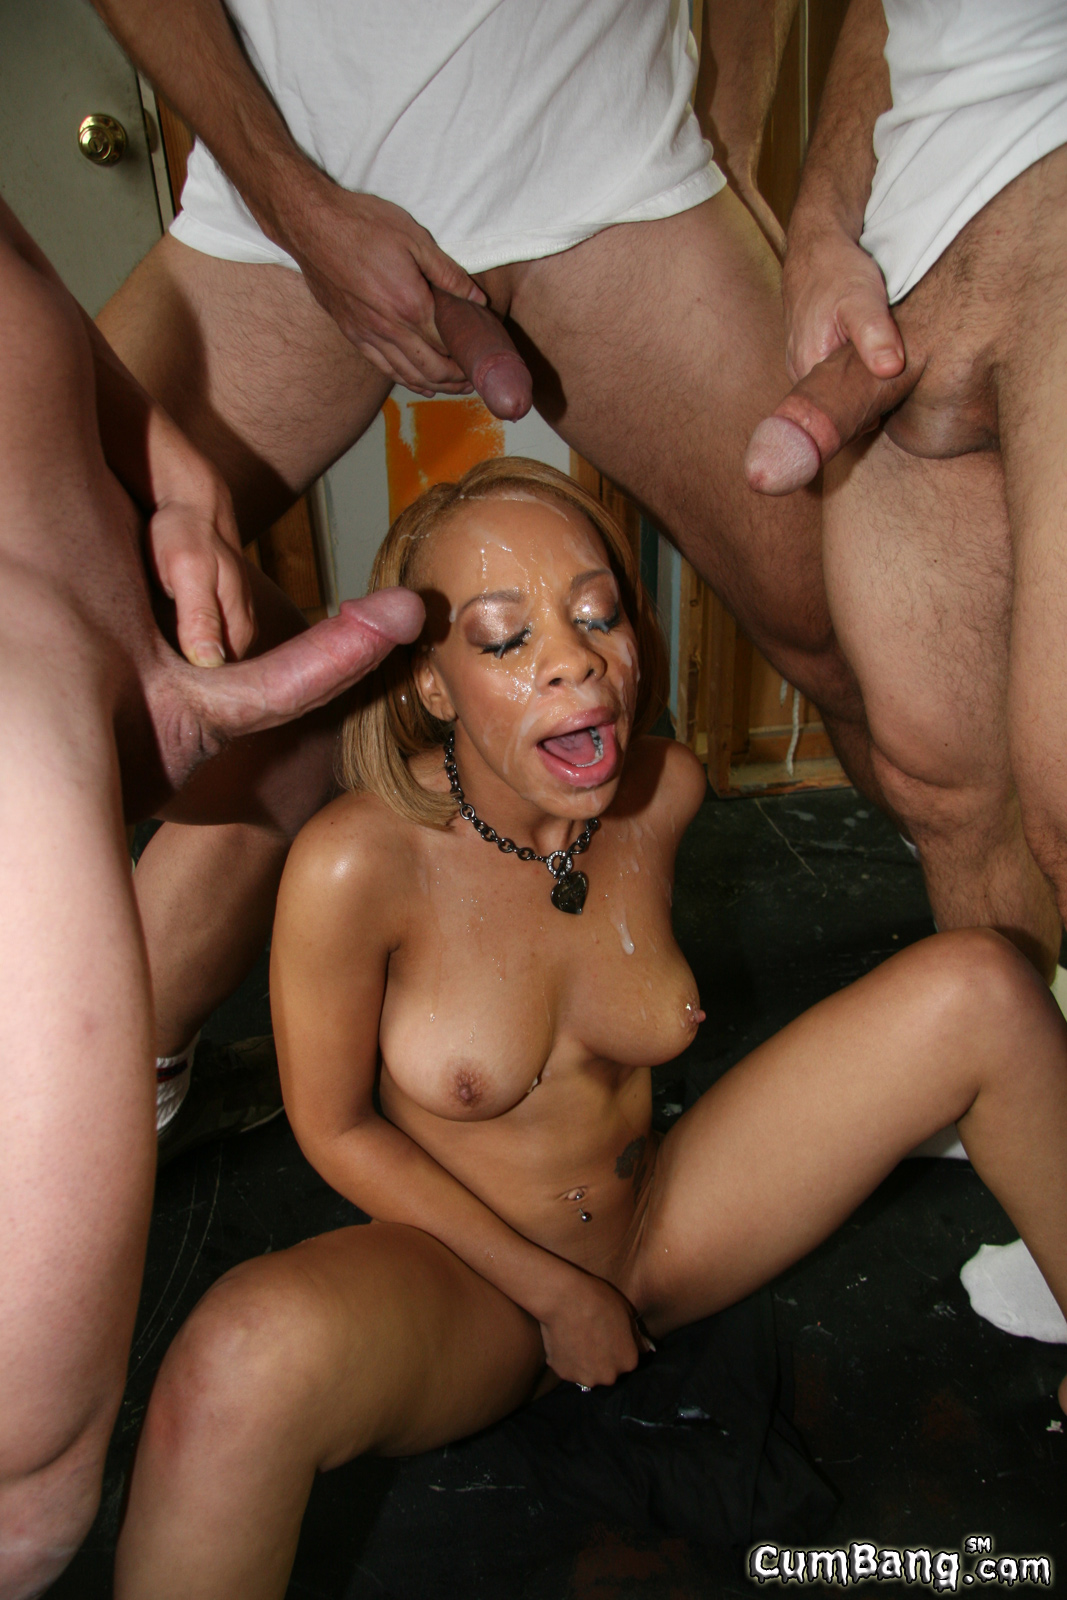 Black slut jazmin ryder owned by white gang 2